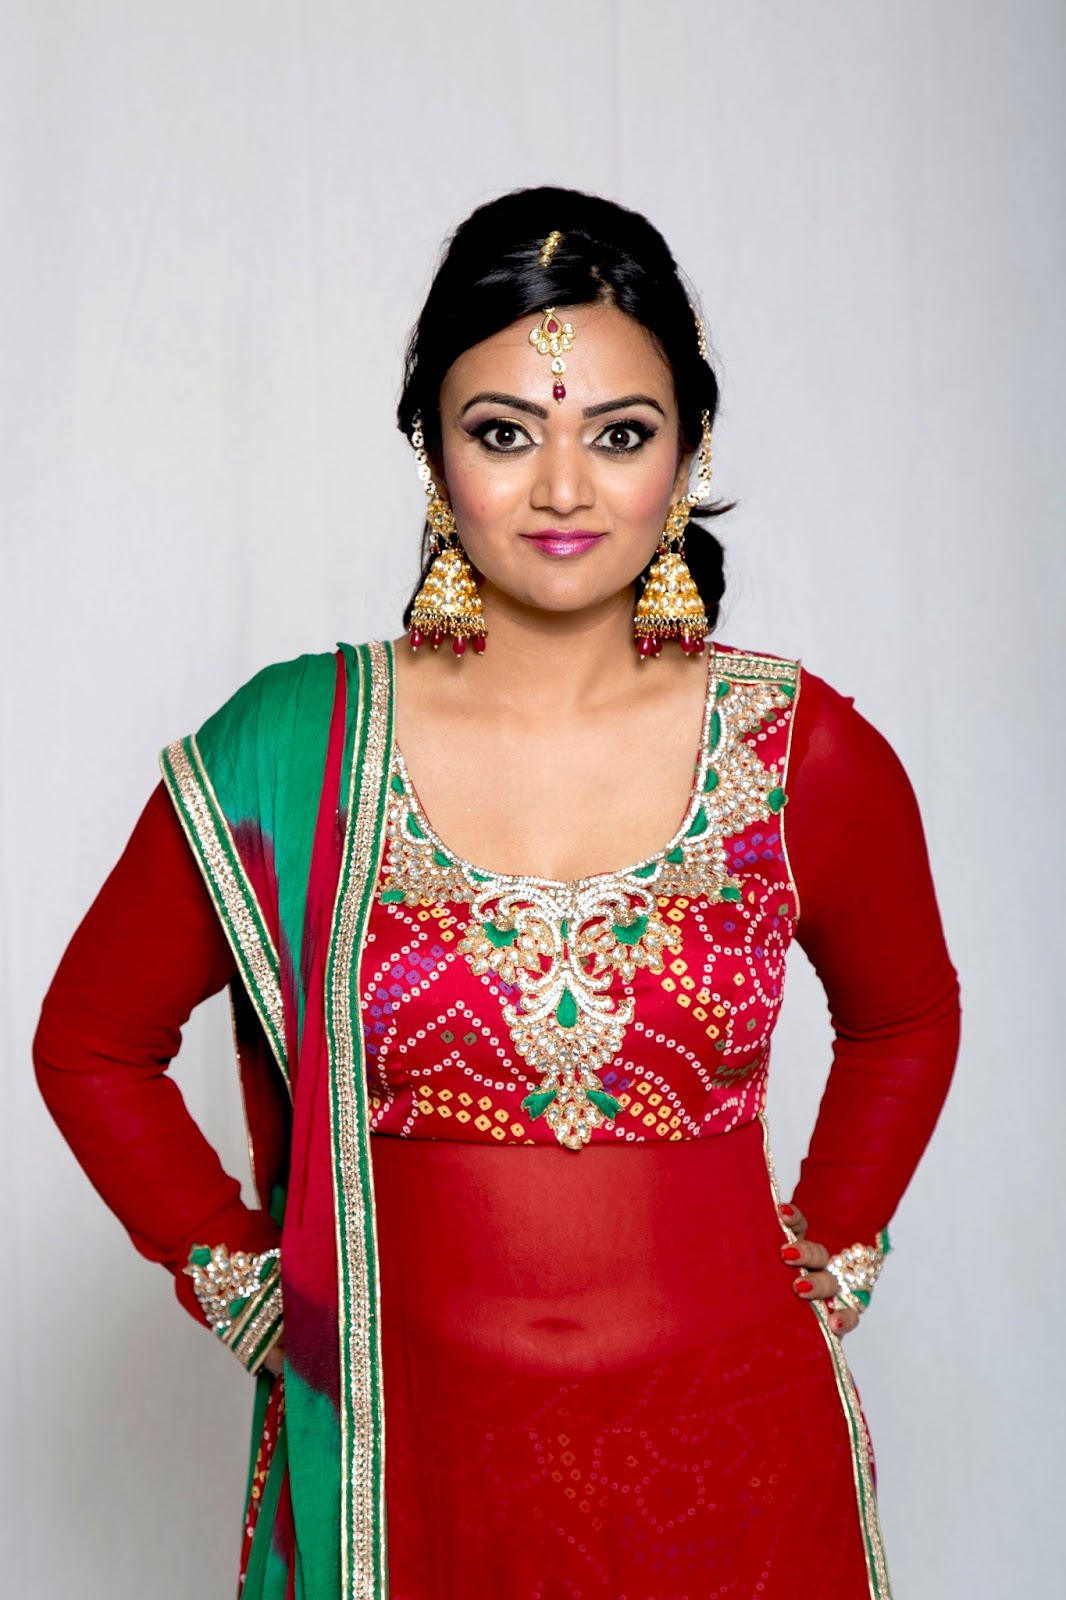 Glameve Fashion review, new indian bride look, red bandhani salwar, indian ethnic outfits online, ethnic fashion blogger